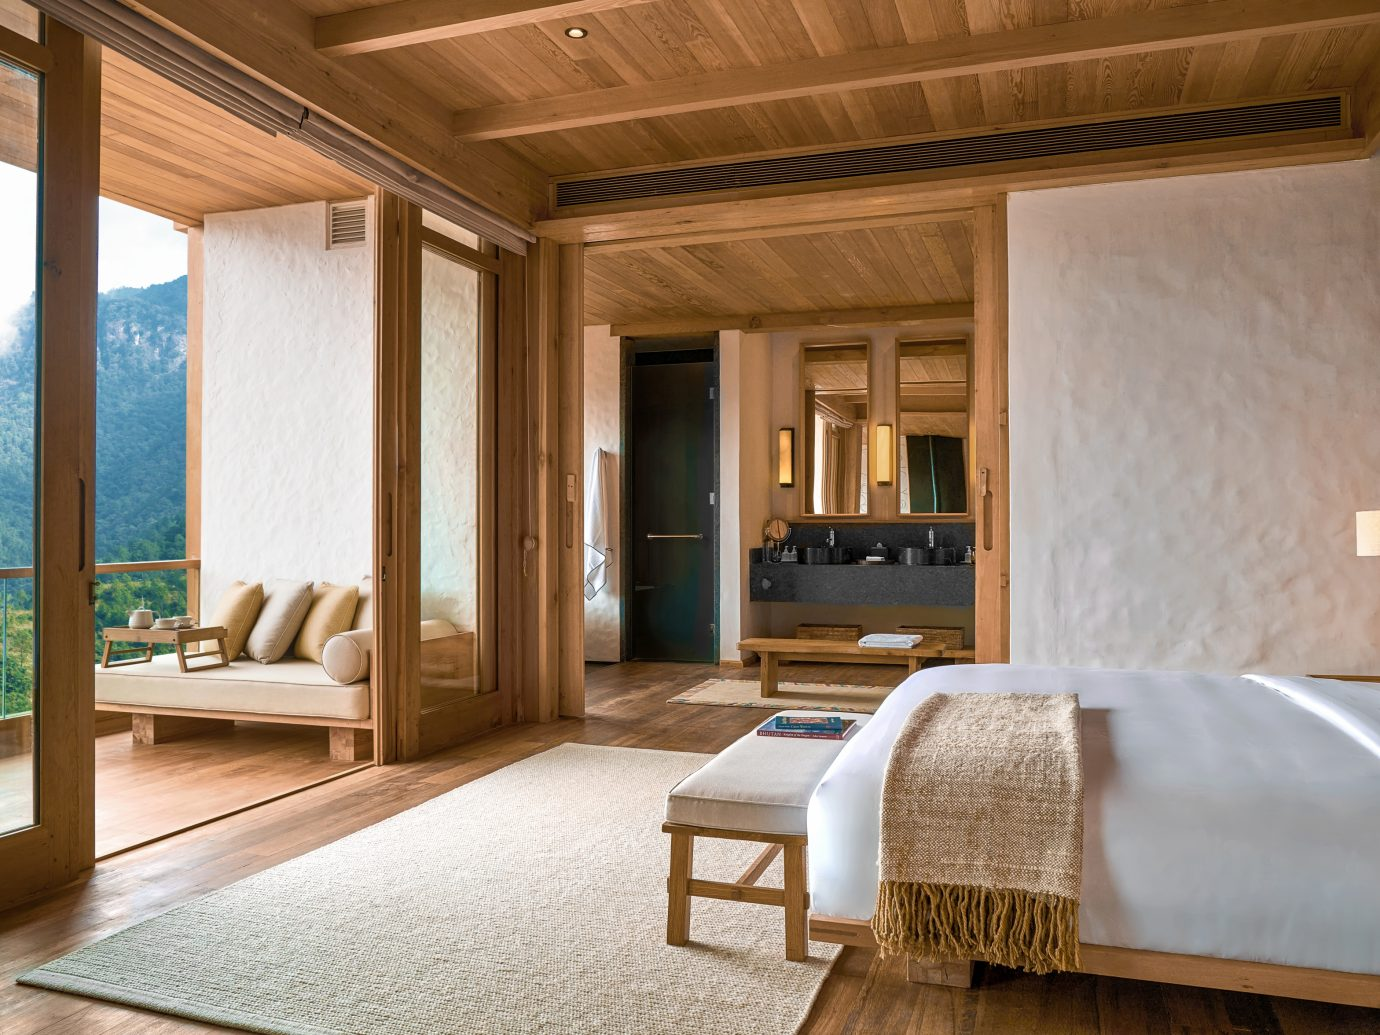 Bedroom at Six Senses Bhutan